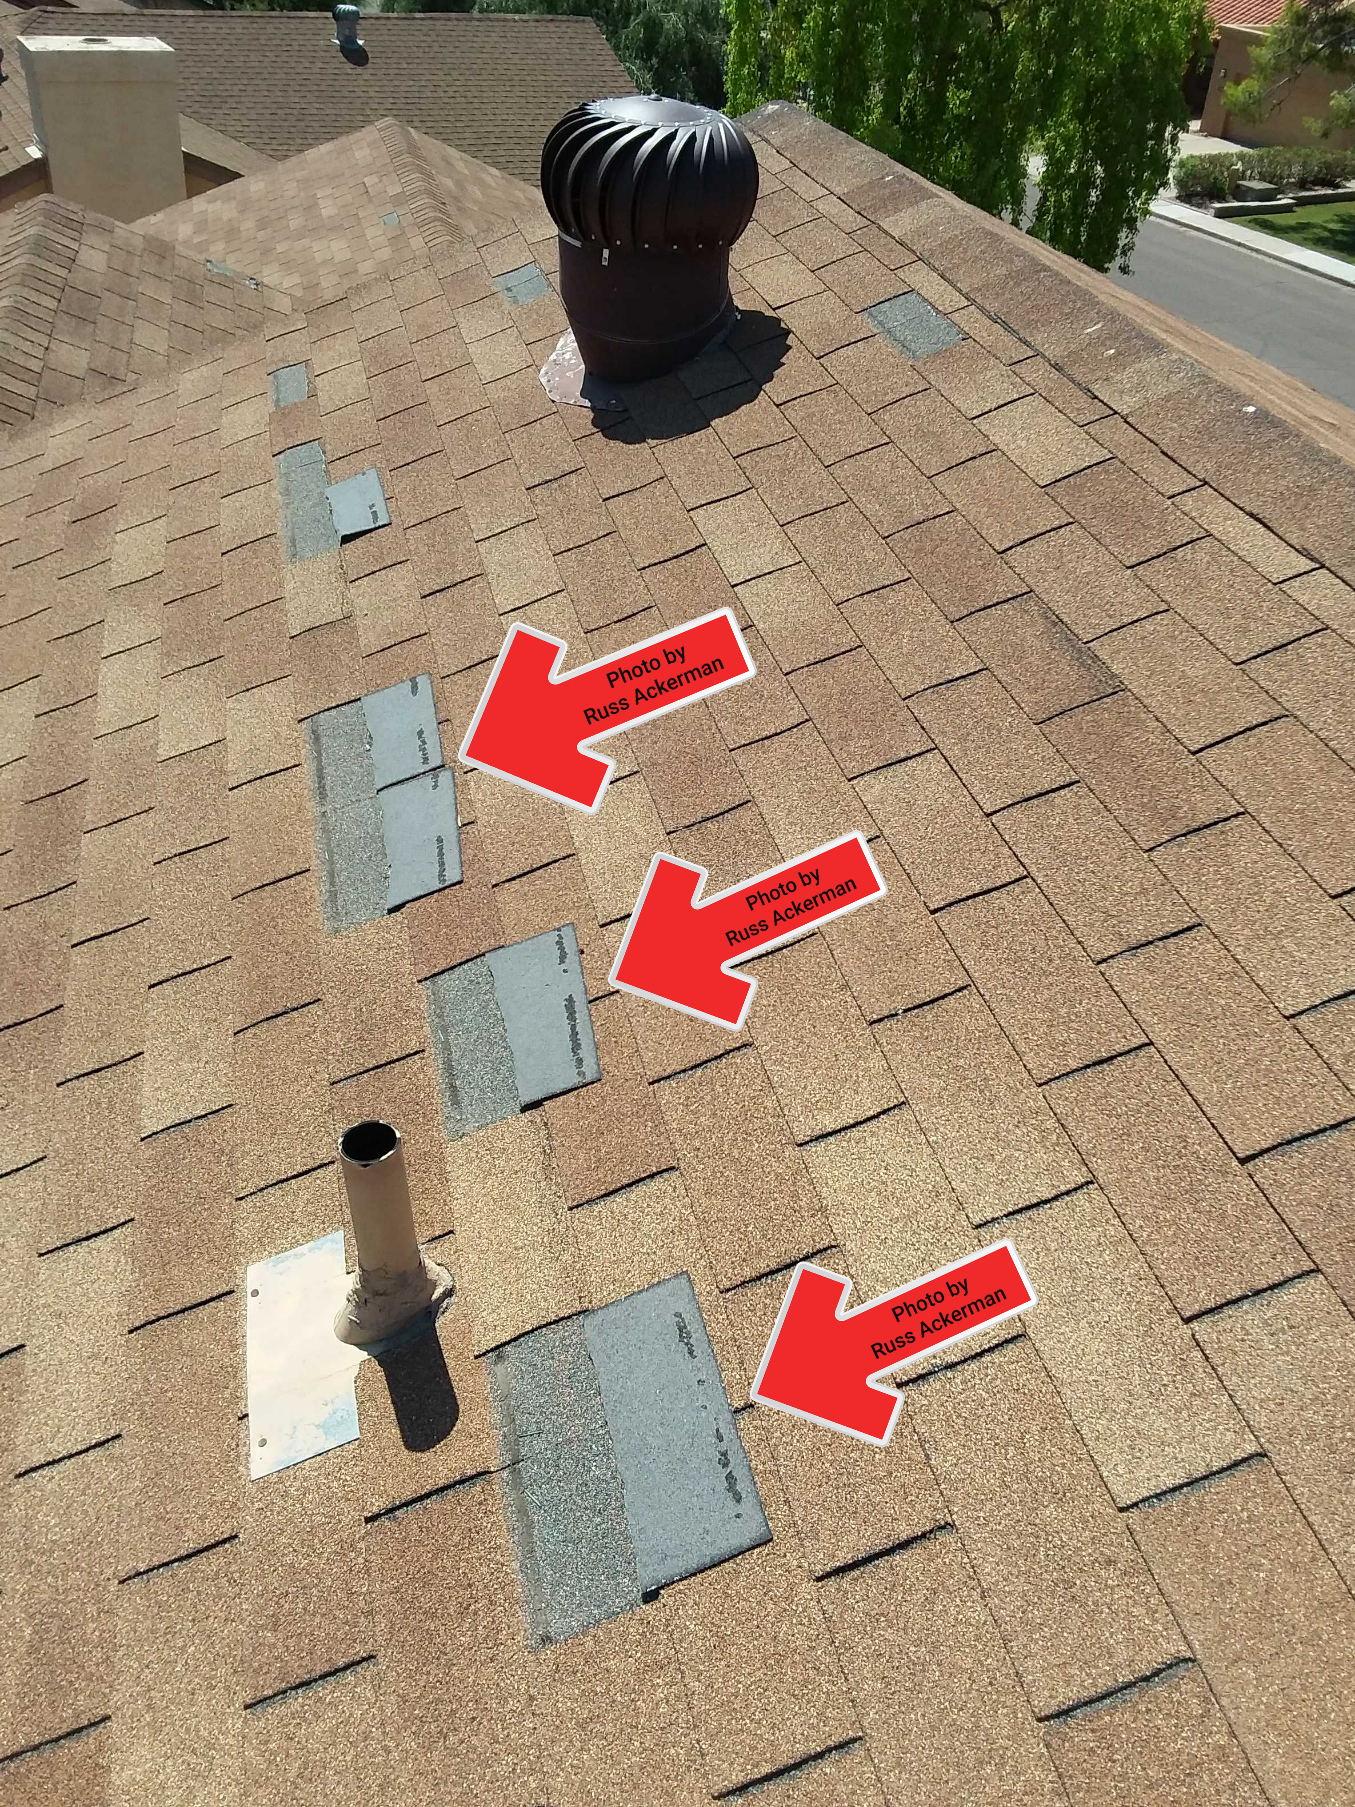 Failed bonding is sure sign that your older asphalt roof is in need of replacement. Wind damage is now inevitable.